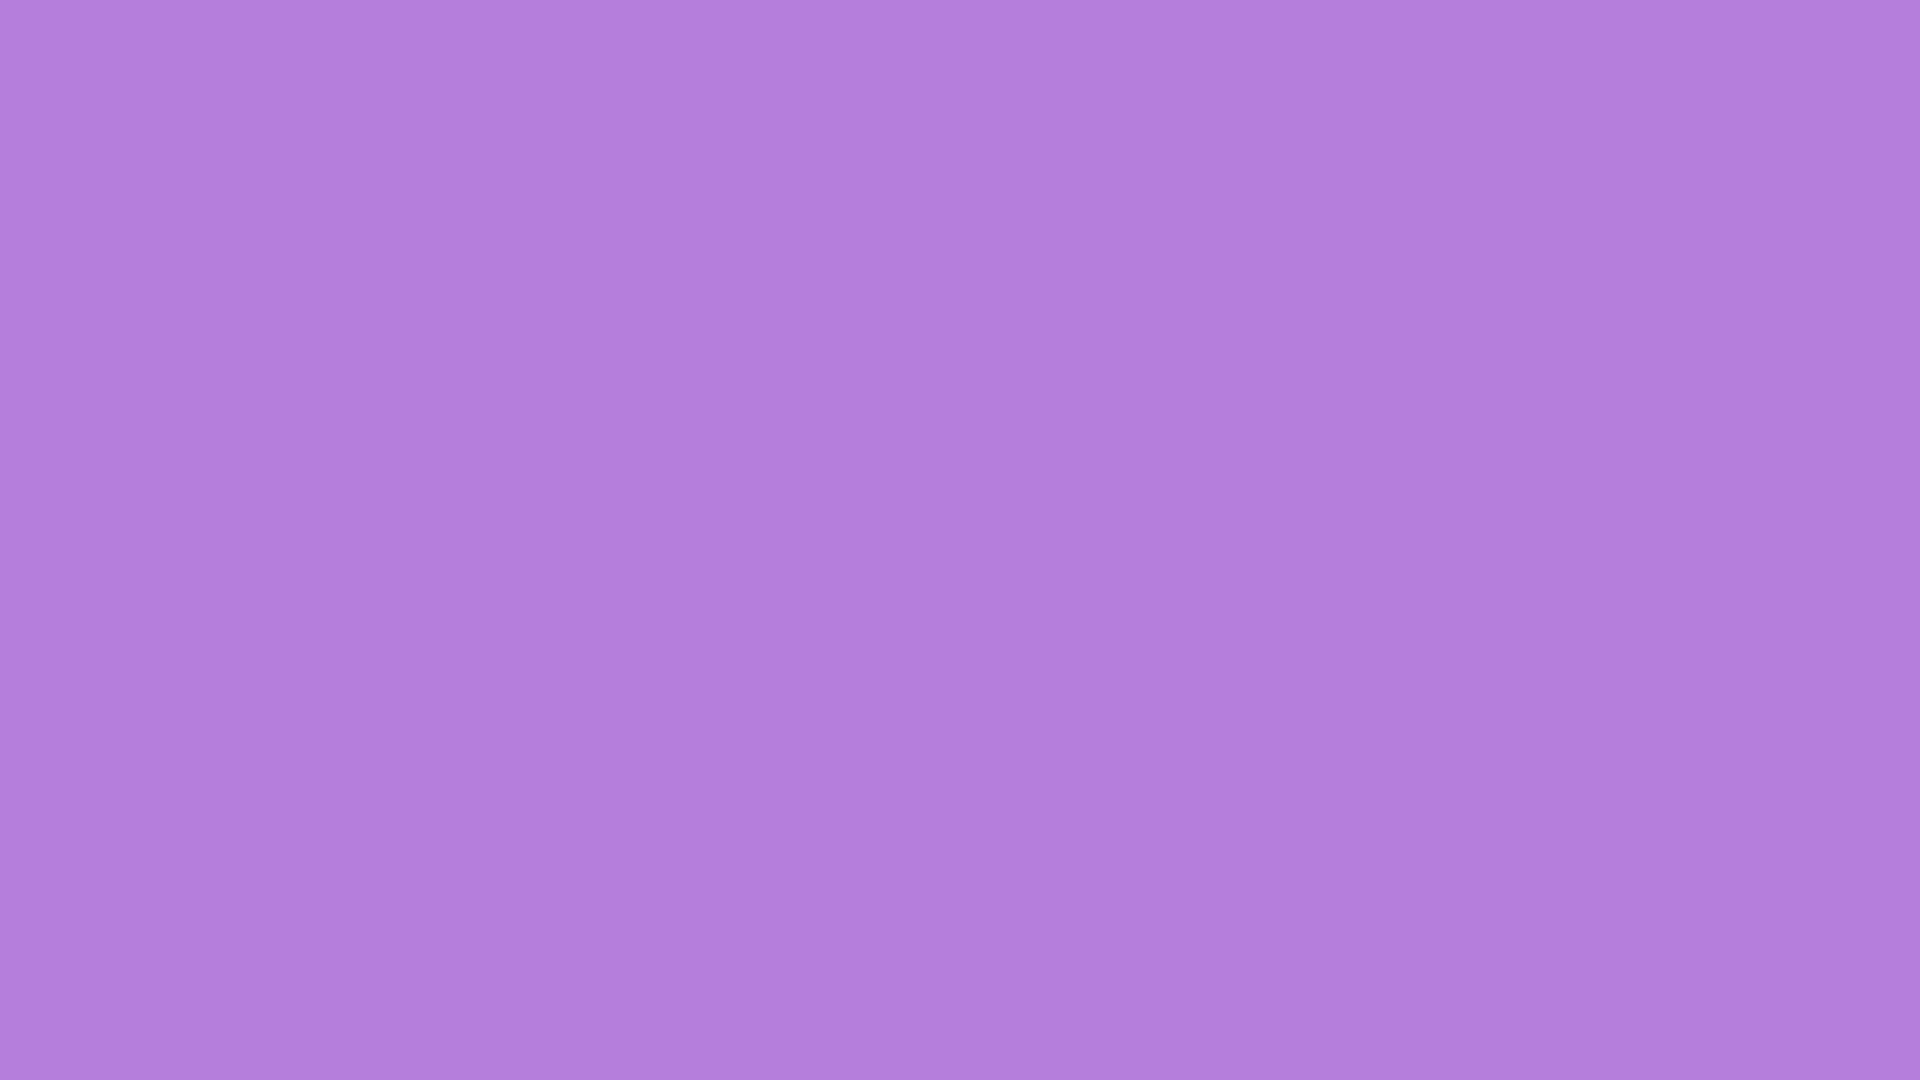 1920x1080 Lavender Floral Solid Color Background